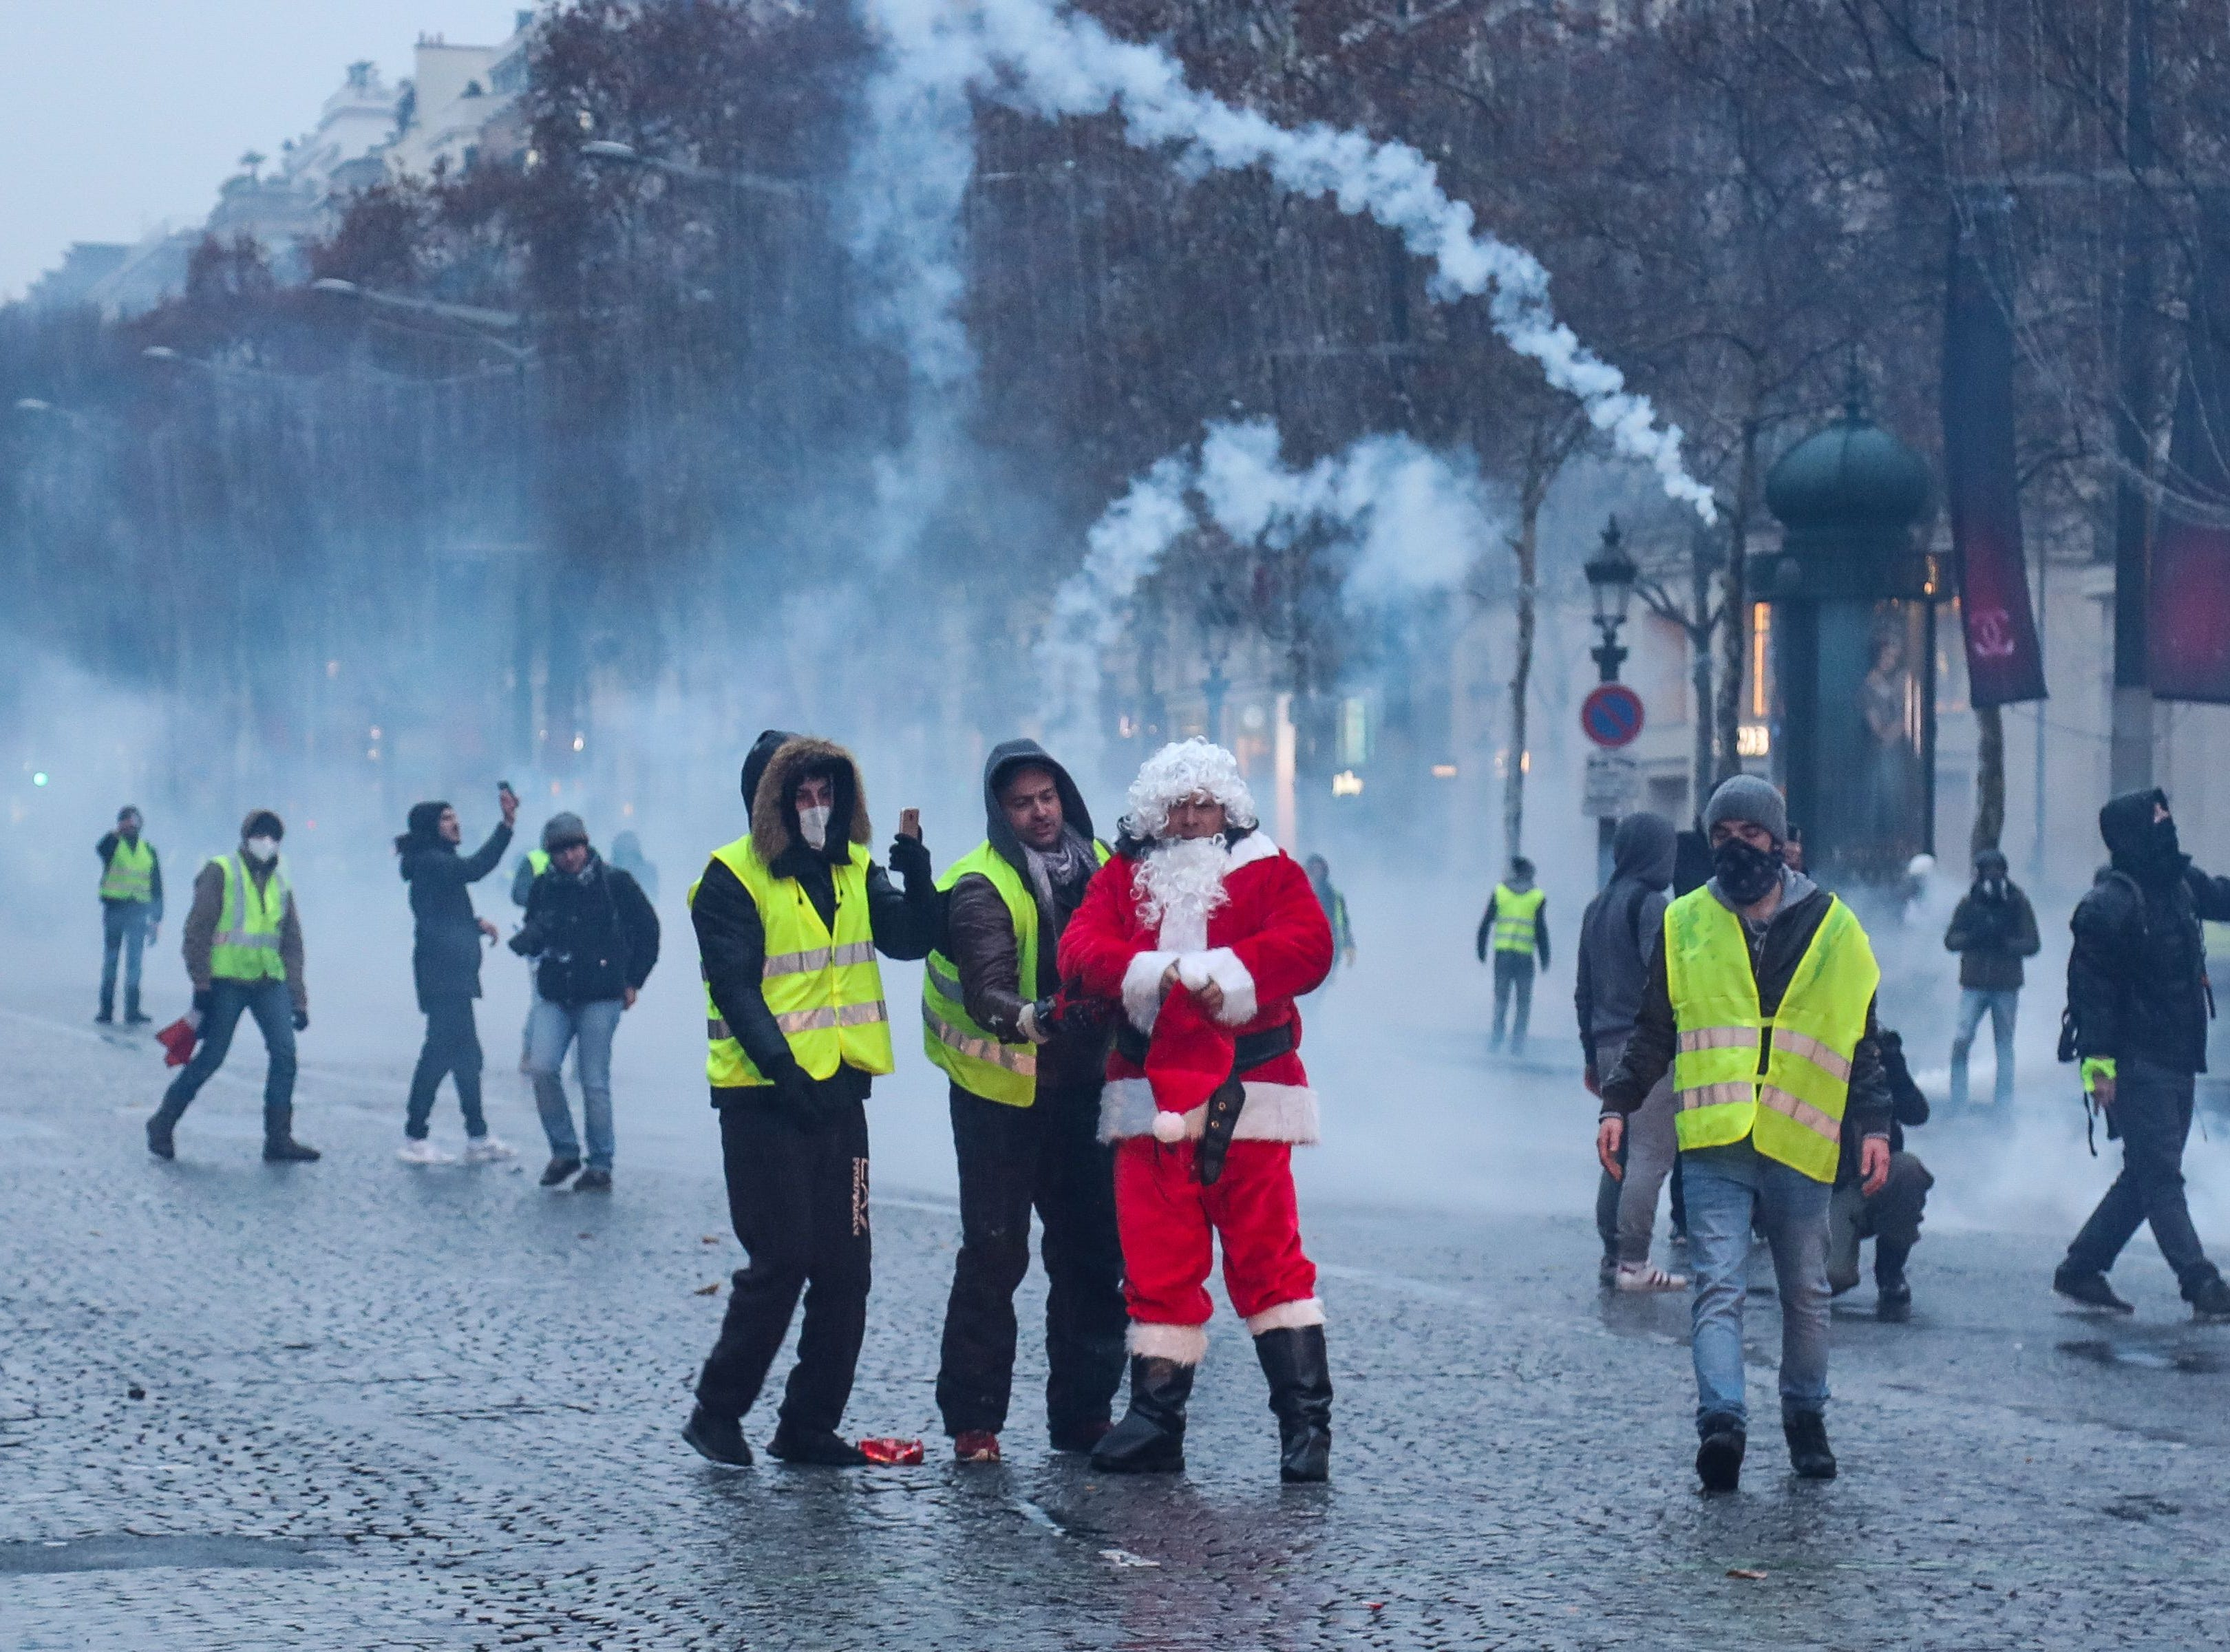 A protester dressed as Santa and wearing a yellow vest (gilet jaune) take part in a demonstration against rising costs of living blamed on high taxes on the Champs-Elysees in Paris, on Dec. 15, 2018.